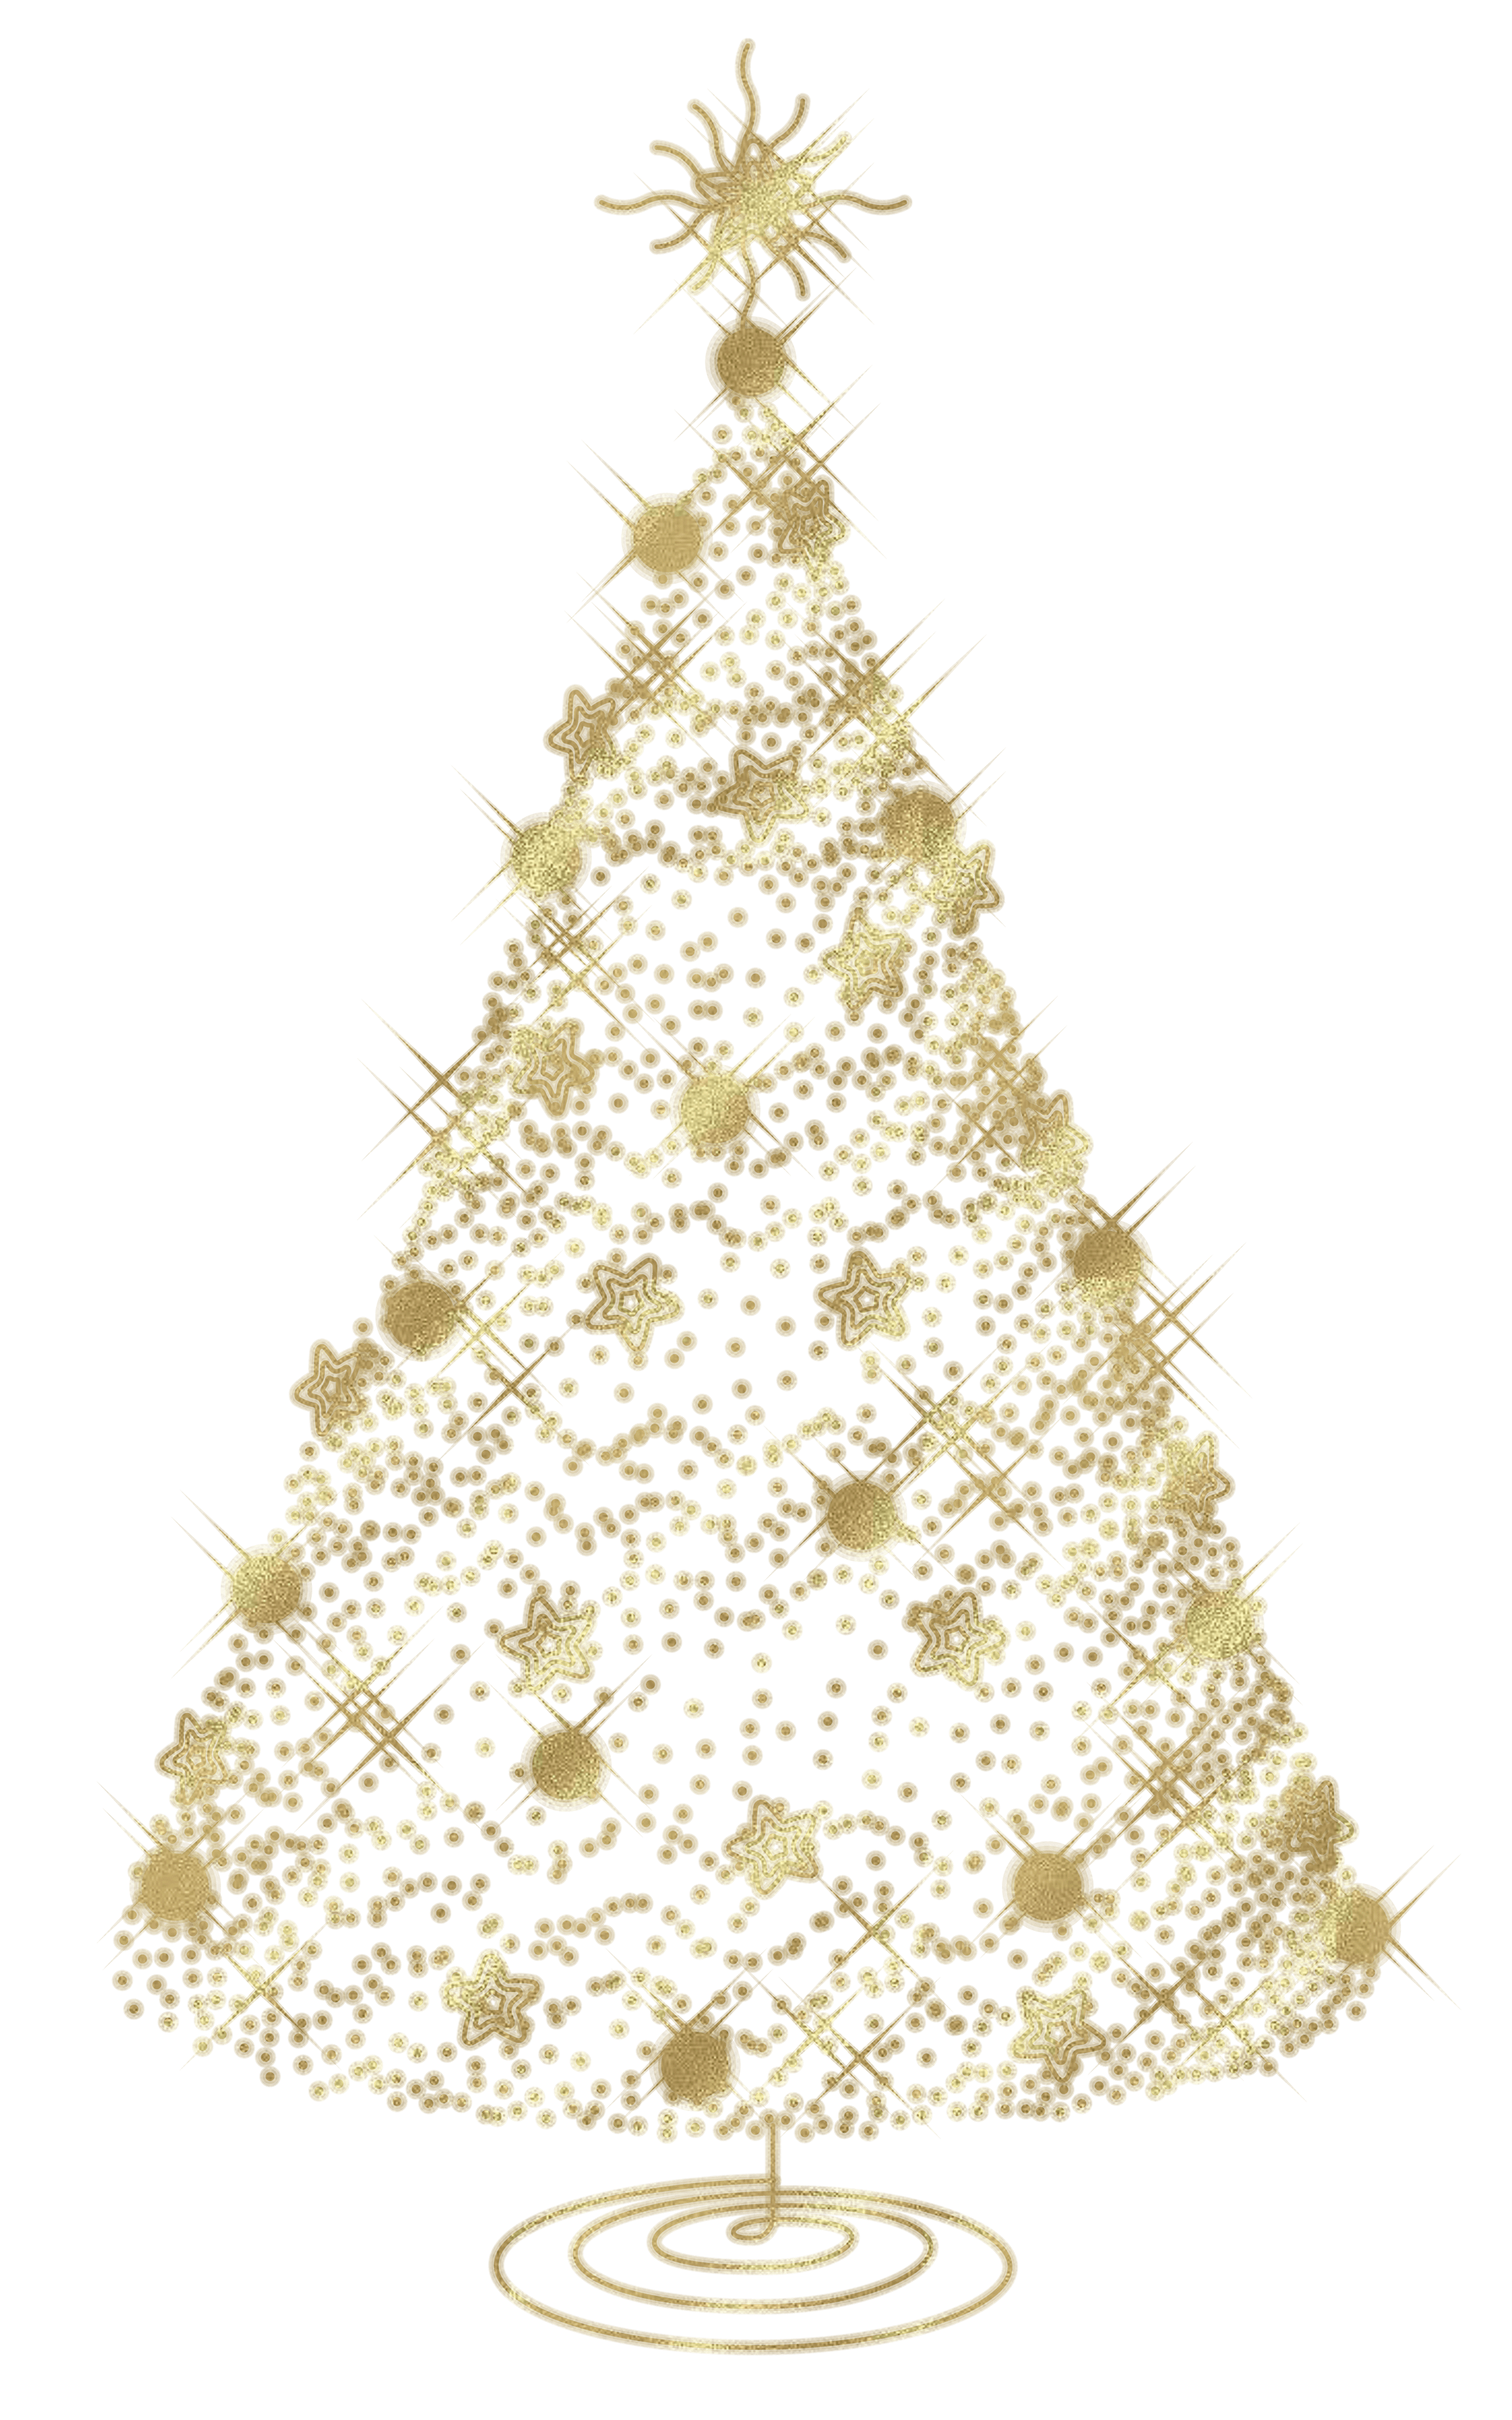 Modern christmas tree clipart clip art transparent stock Modern Transparent Christmas Gold Tree PNG Clipart clip art transparent stock